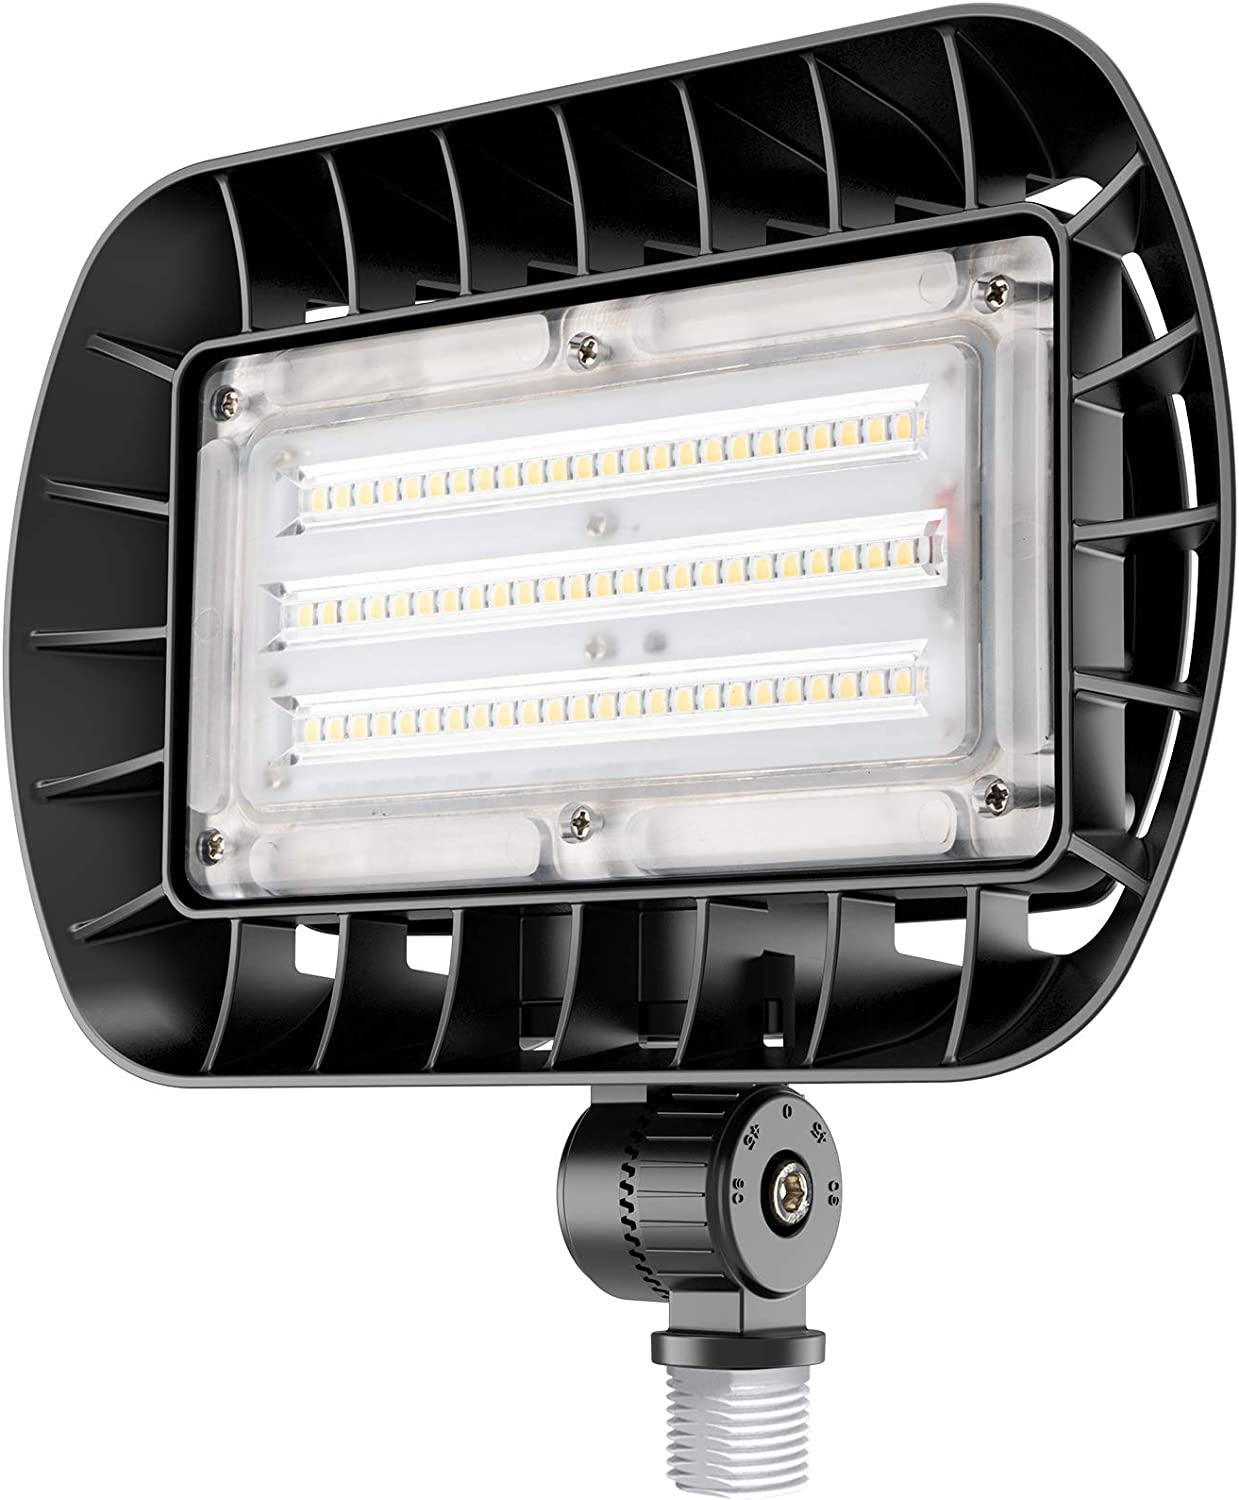 bulbeats Durable 50W LED Flood Light with Knuckle Mount, 5500LM Super Bright, 5000K Daylight, IP65 Waterproof Security Light for Outdoor Security Lighting: Home Improvement